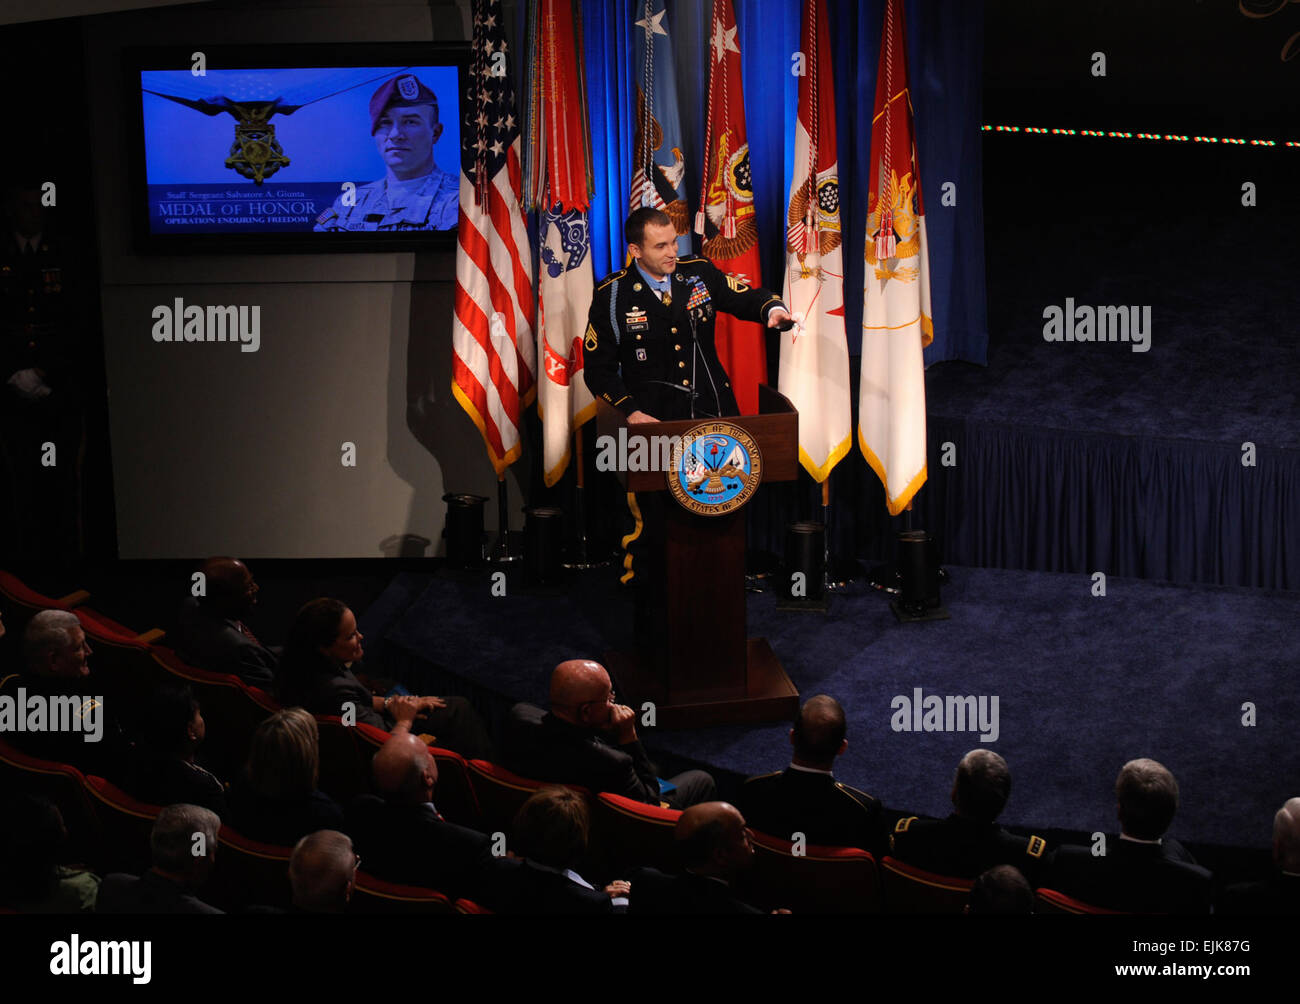 Medal of Honor recipient Staff Sergeant Salvatore A. Giunta addresses the audience after receiving the Medal of - Stock Image